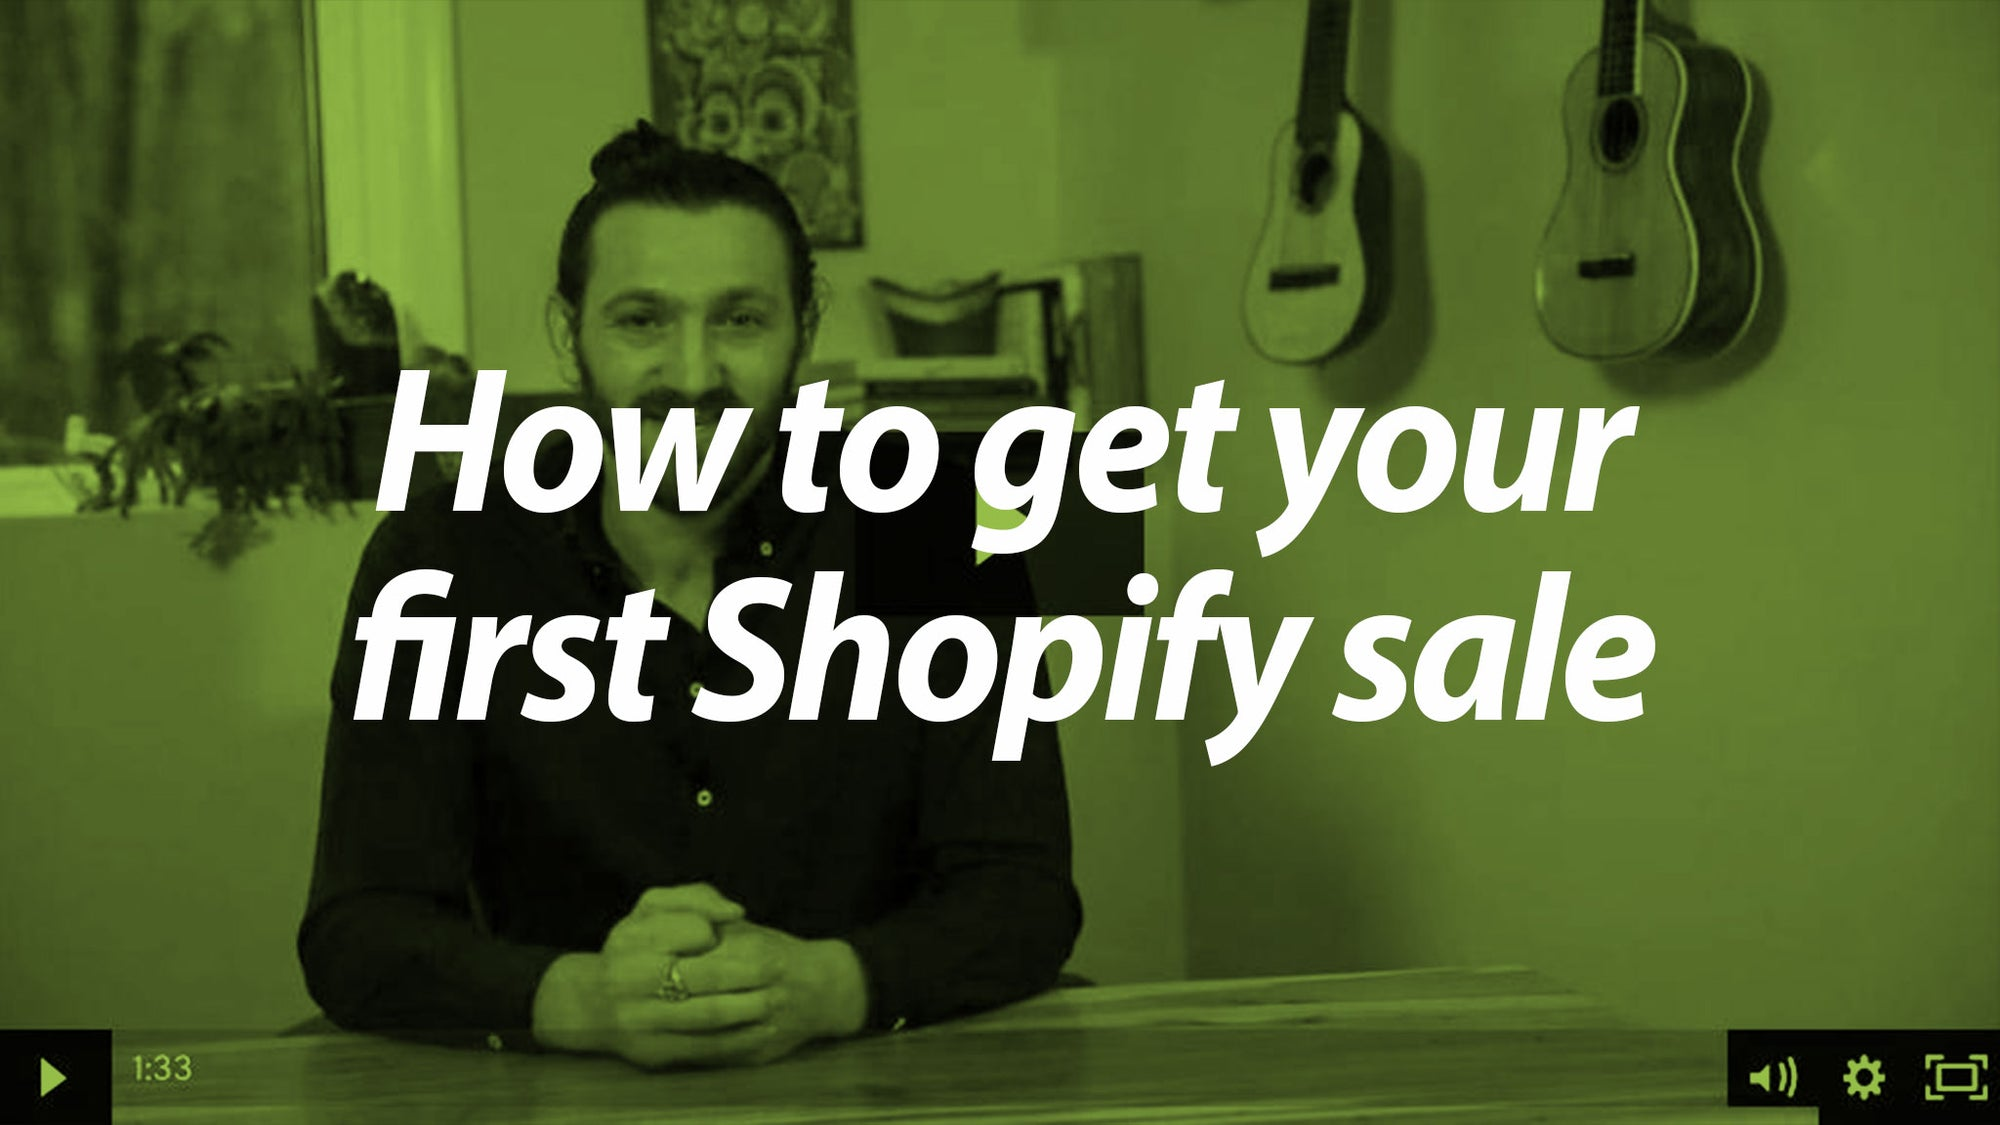 How to get your first shopify sale